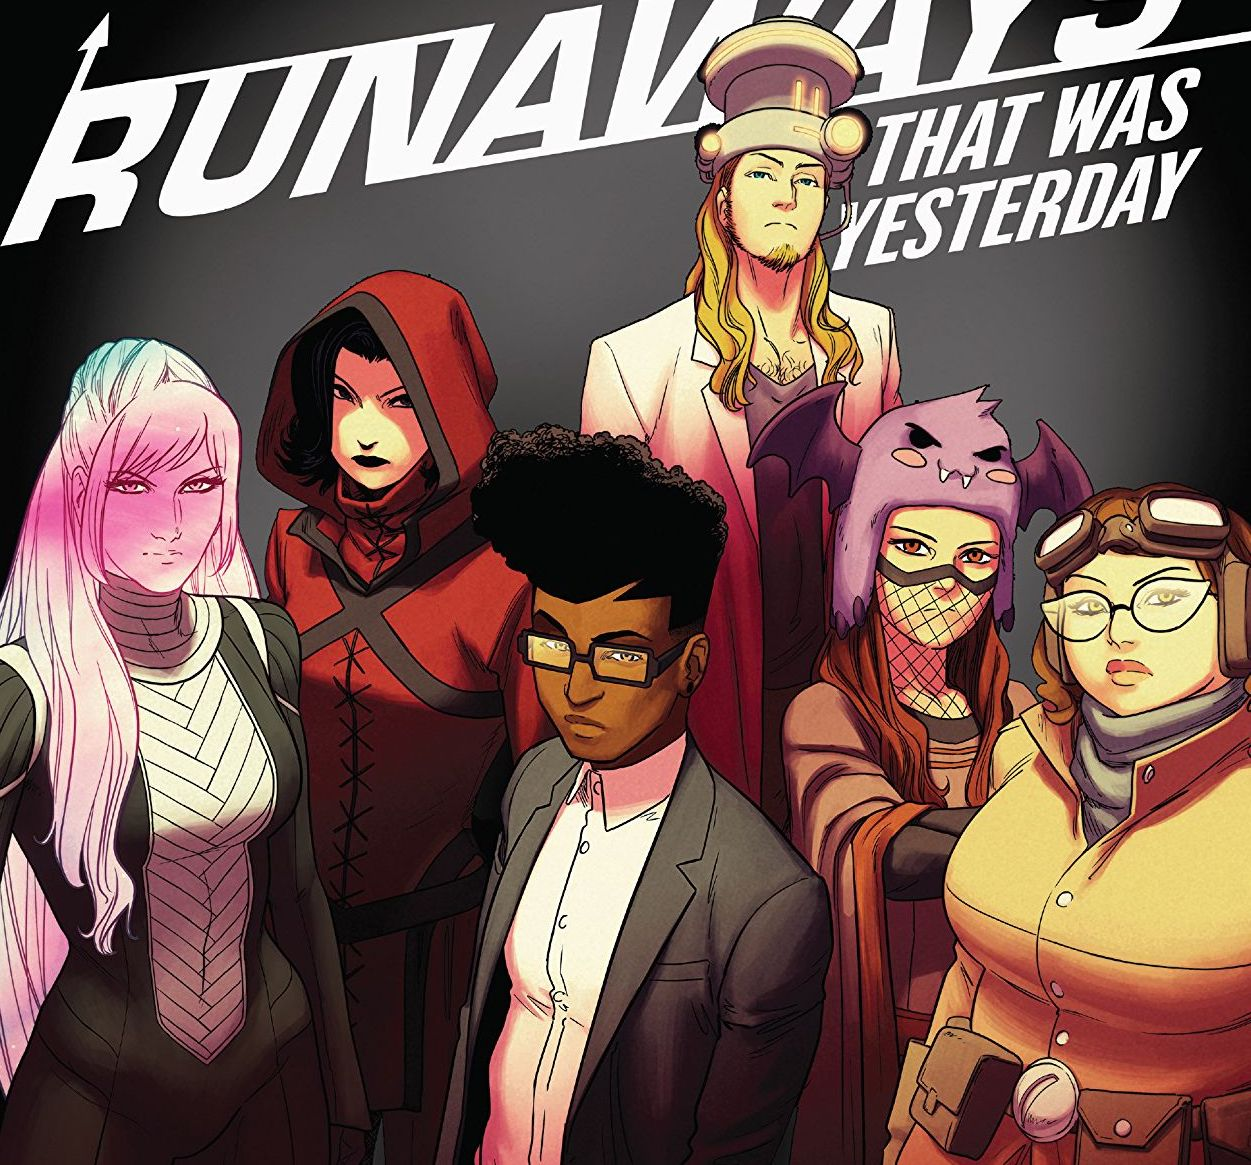 Runaways by Rainbow Rowell & Kris Anka Vol. 3: That Was Yesterday Review